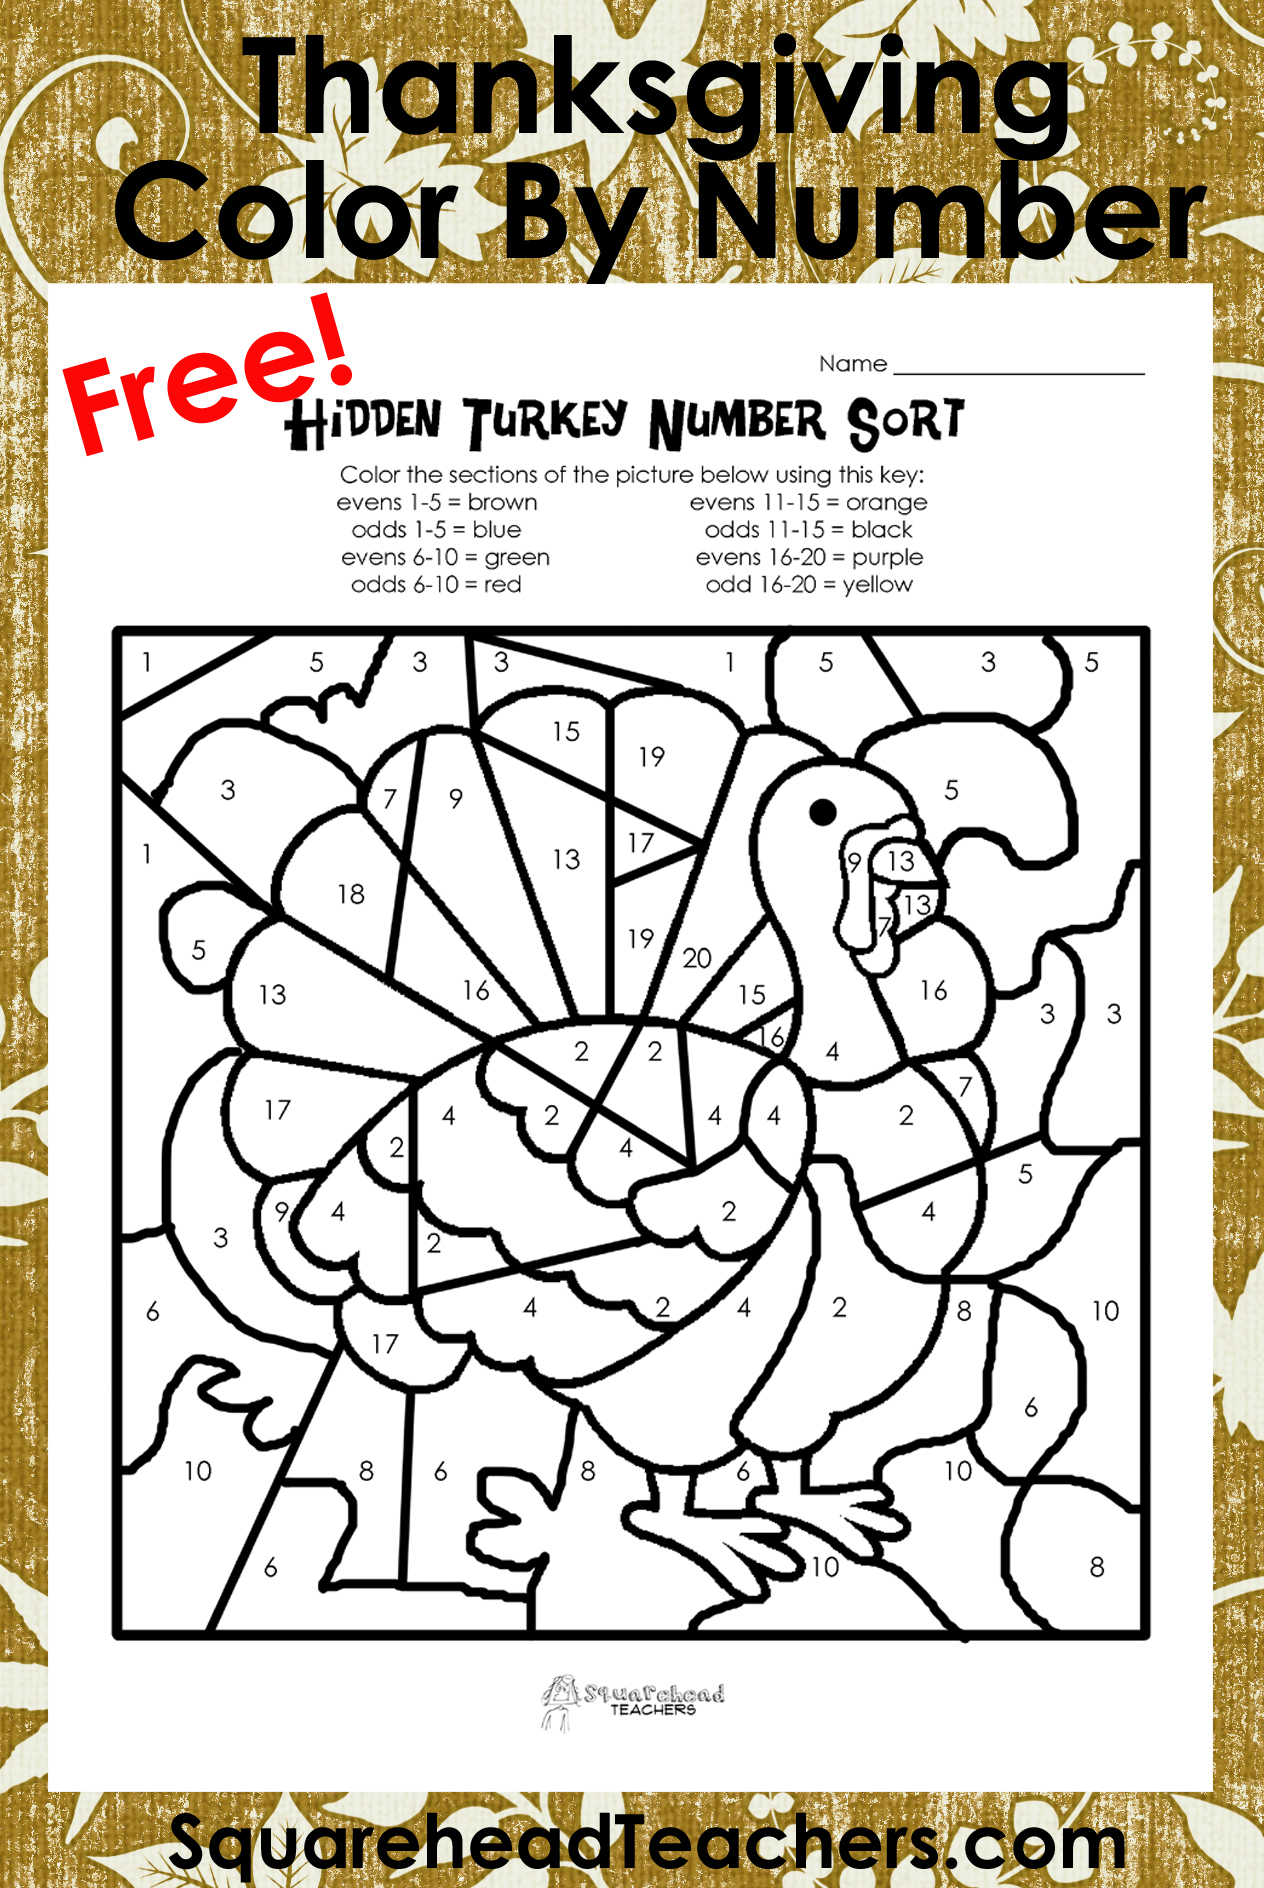 Homeschool Parent Thanksgiving Odd And Even Color By Number Turkey Freebie